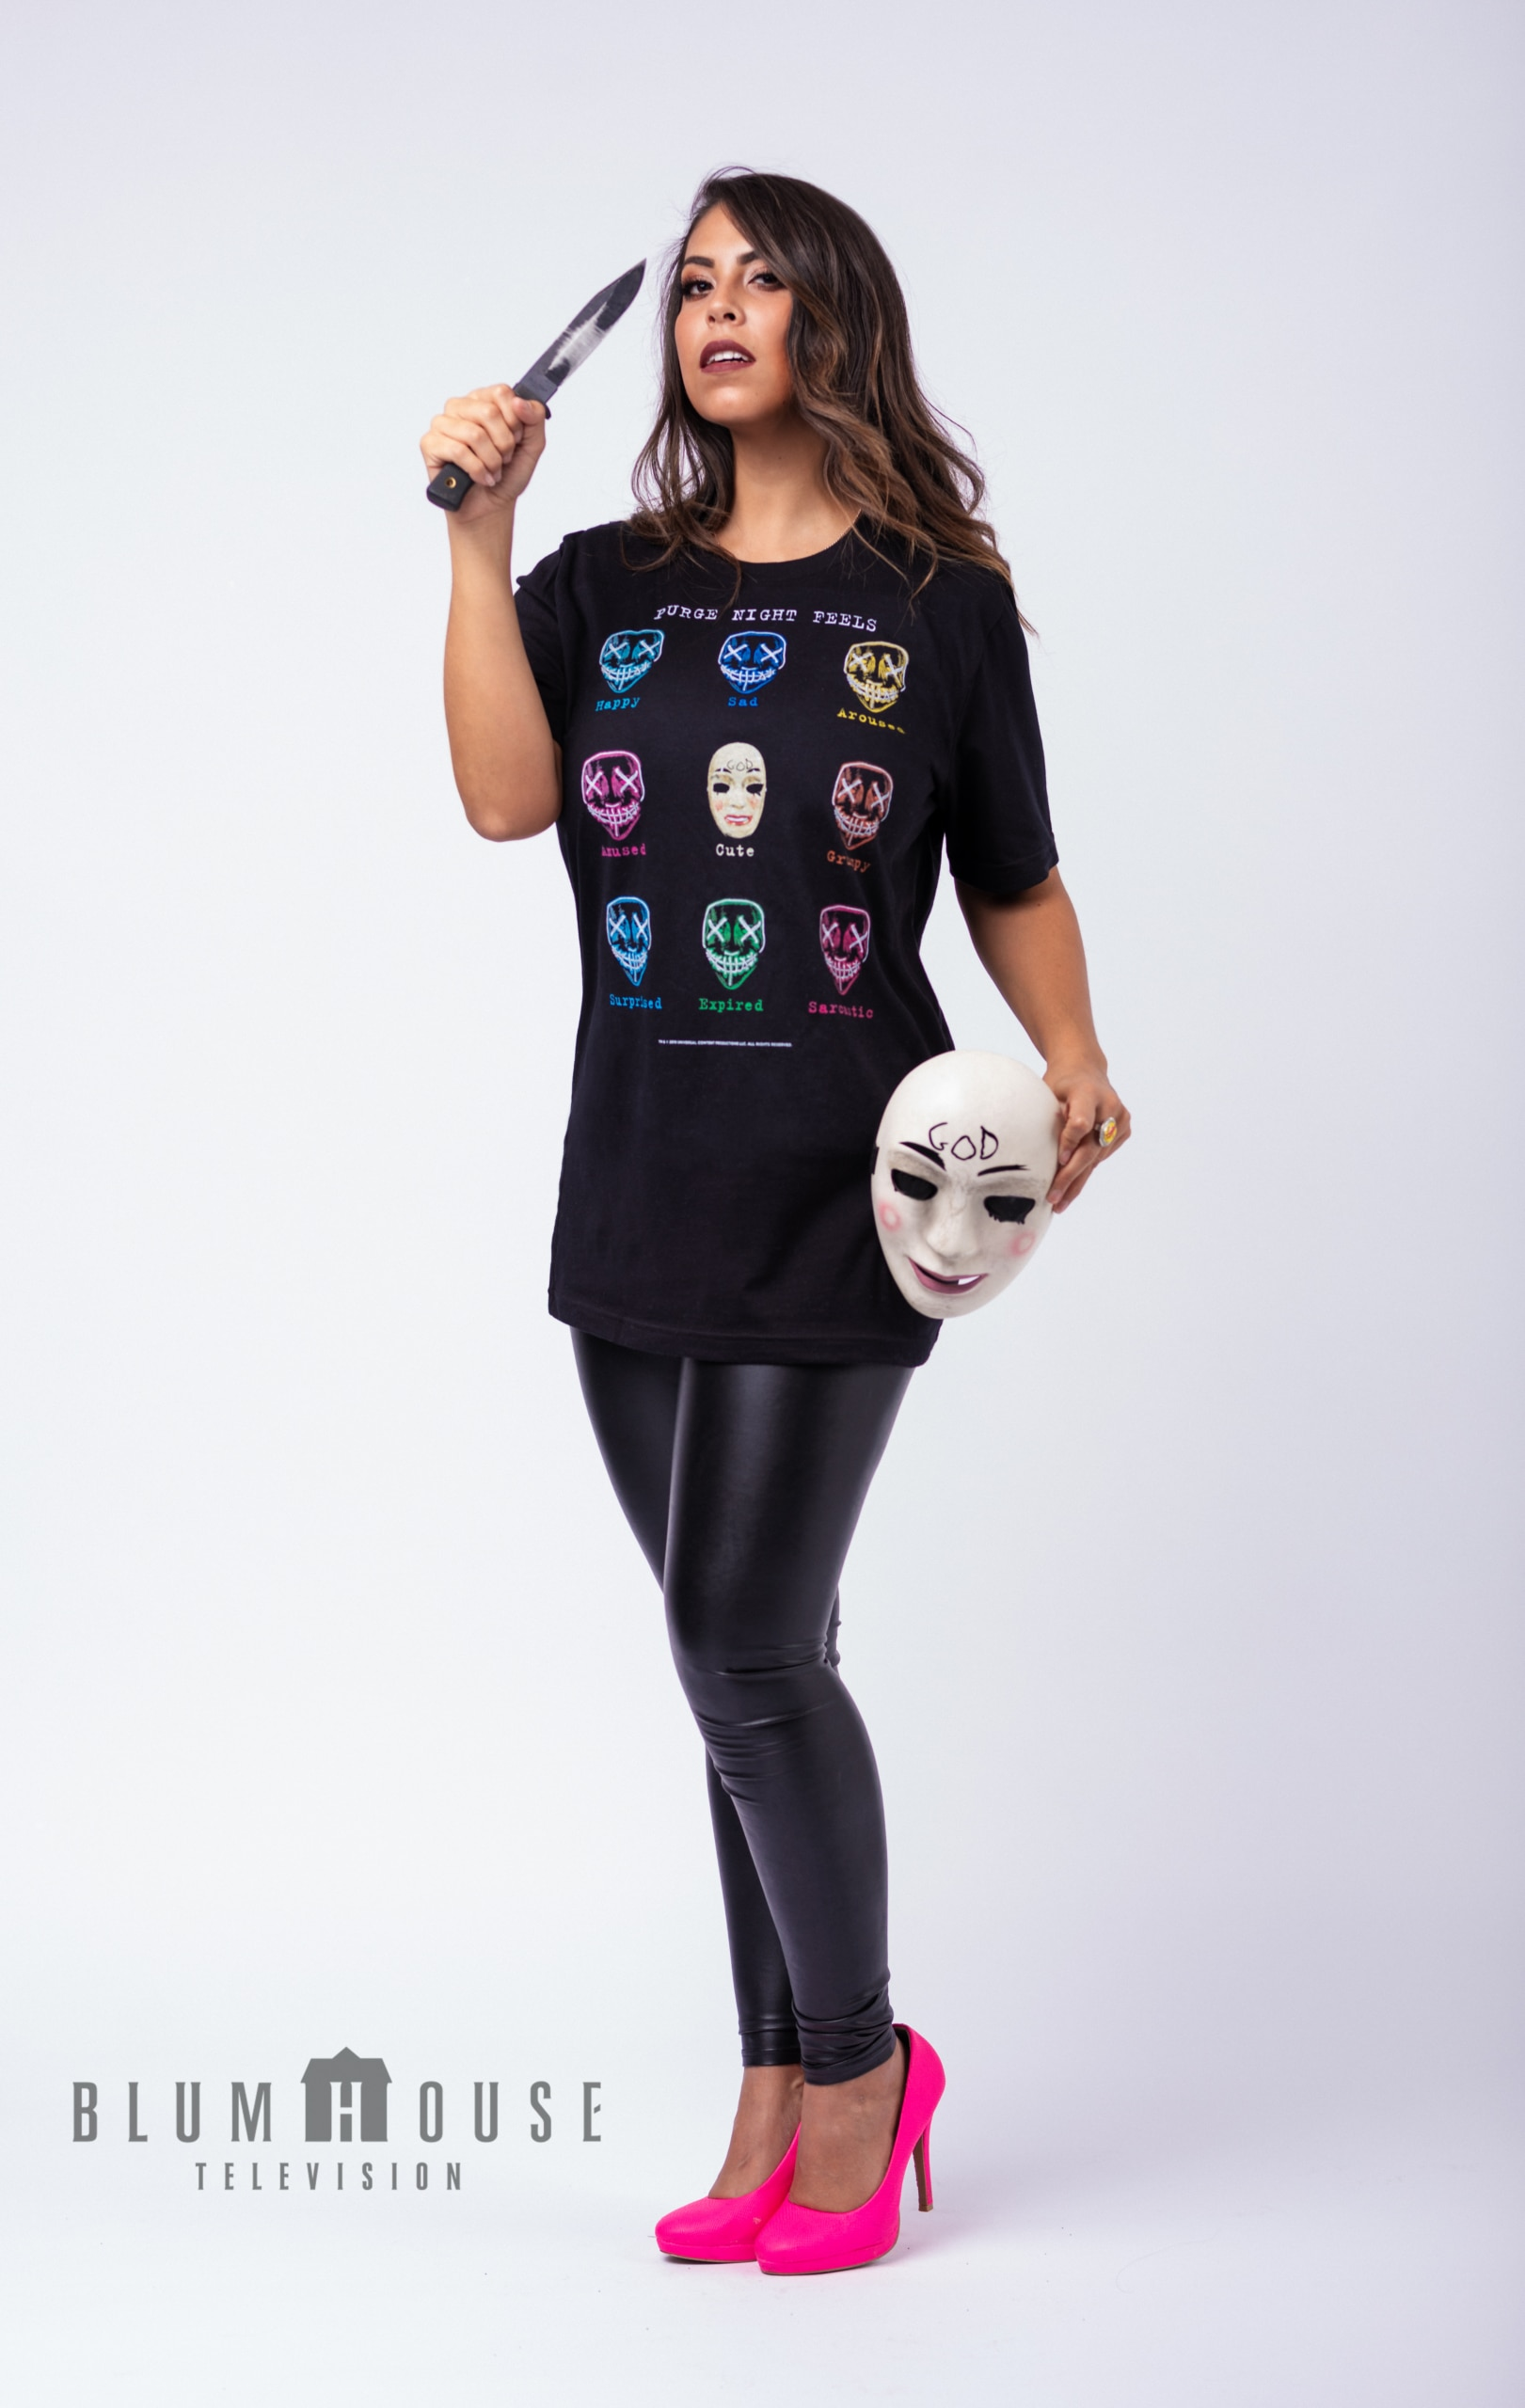 Gigi x Purge 1 scaled - Exclusive: Gigi Saul Guerrero & Blumhouse Partner on Exclusive Merch Inspired by THE PURGE